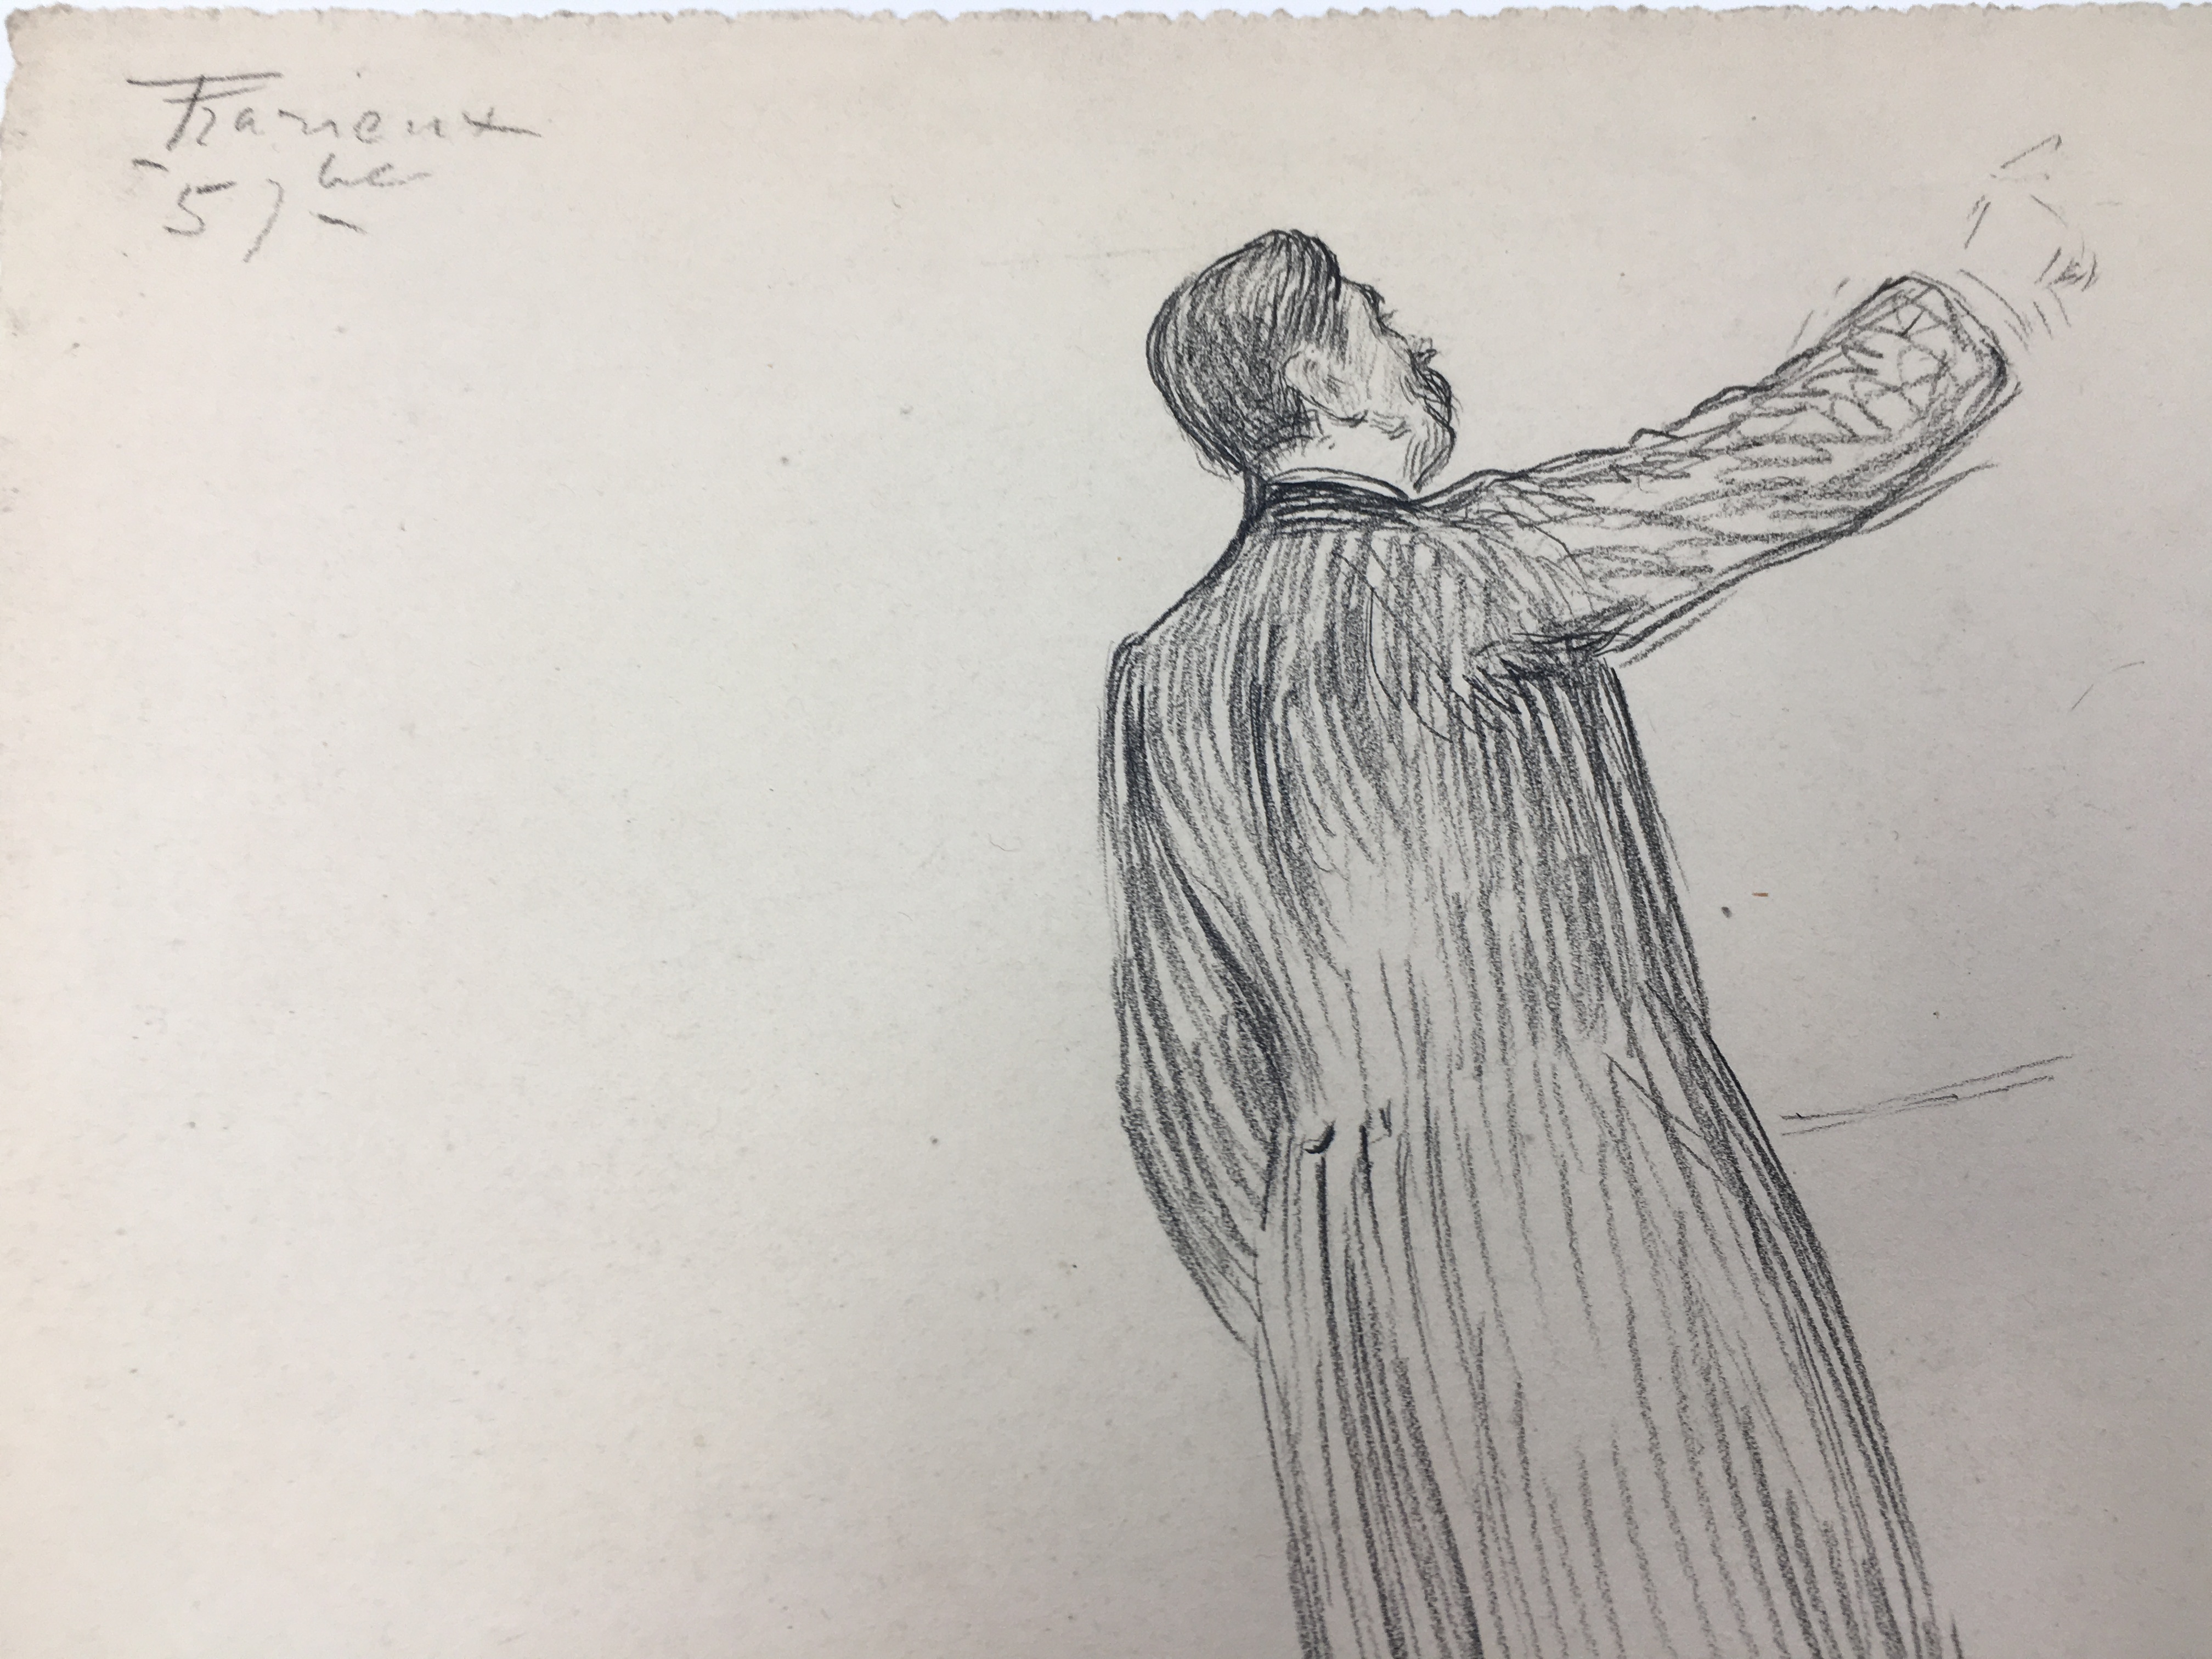 J'Accuse Newspaper, Emile Zola Quote, Signed Dreyfus Portrait, Rare Trial Drawings & Schwartzkoppen - Image 72 of 74